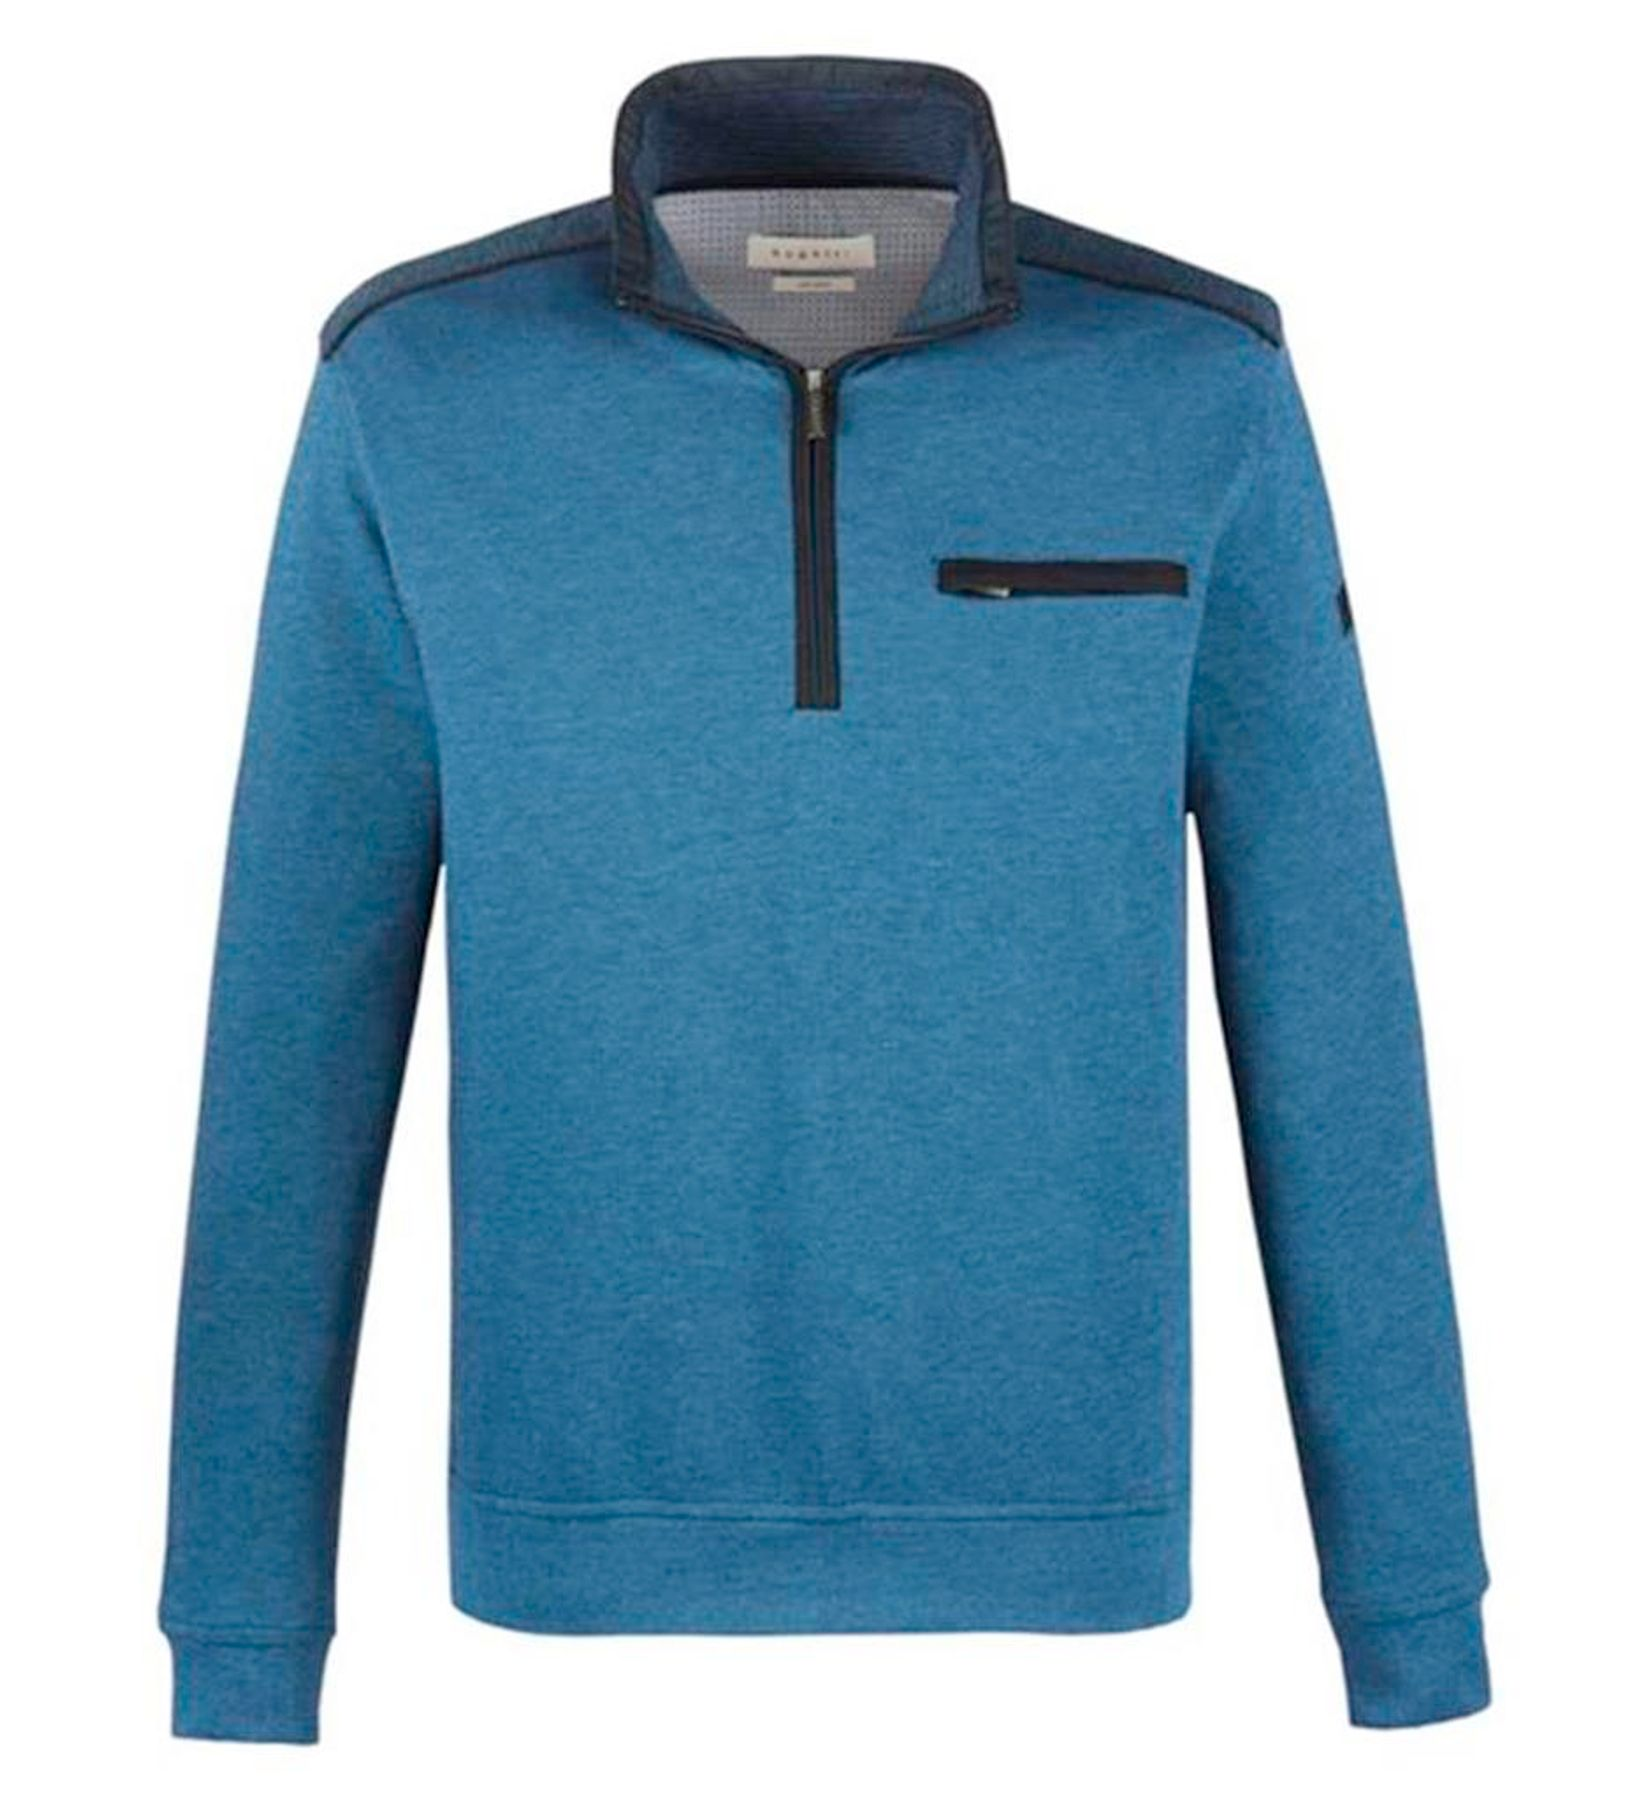 Bugatti - Herren Sweat Troyer (Art. Nr.: 95140-8500) – Bild 5